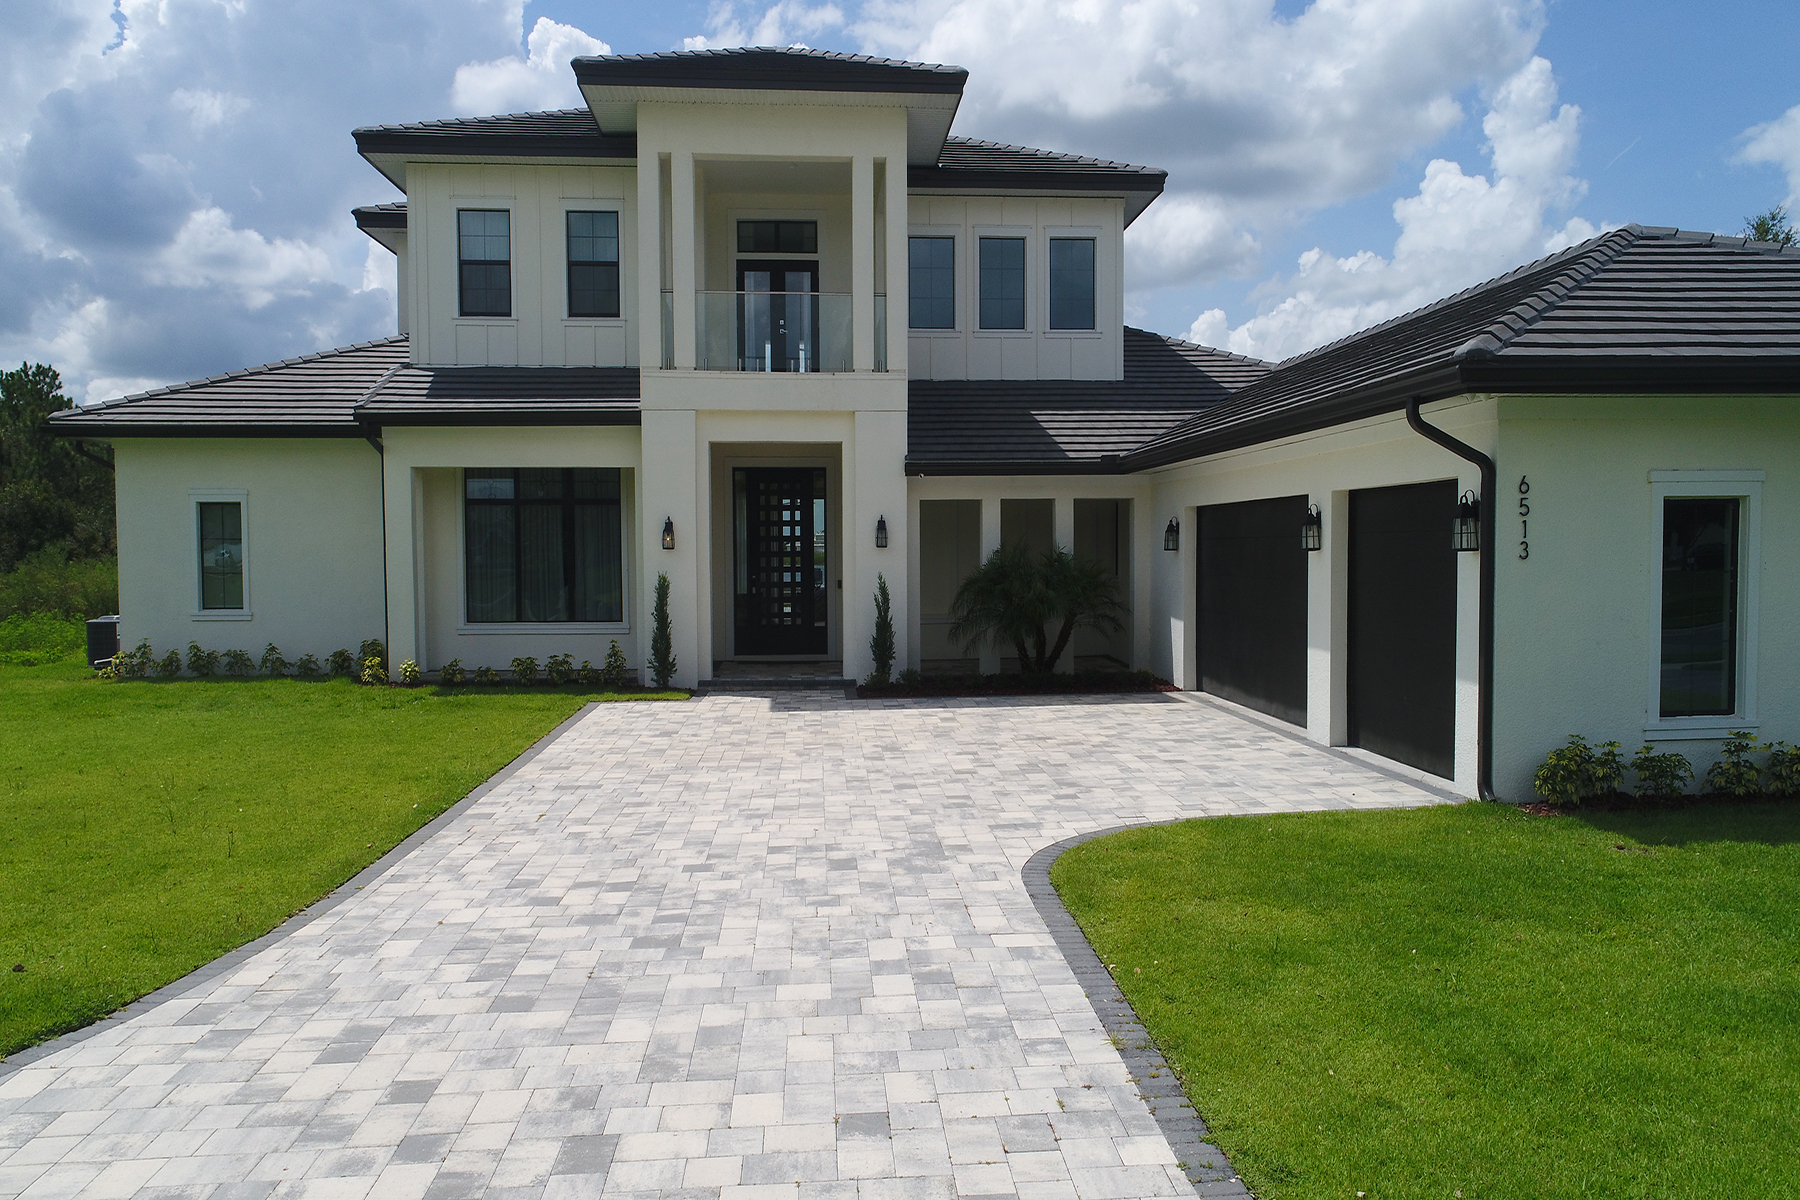 Single Family Homes for Sale at WINTER GARDEN 6513 Point Hancock Dr Winter Garden, Florida 34787 United States